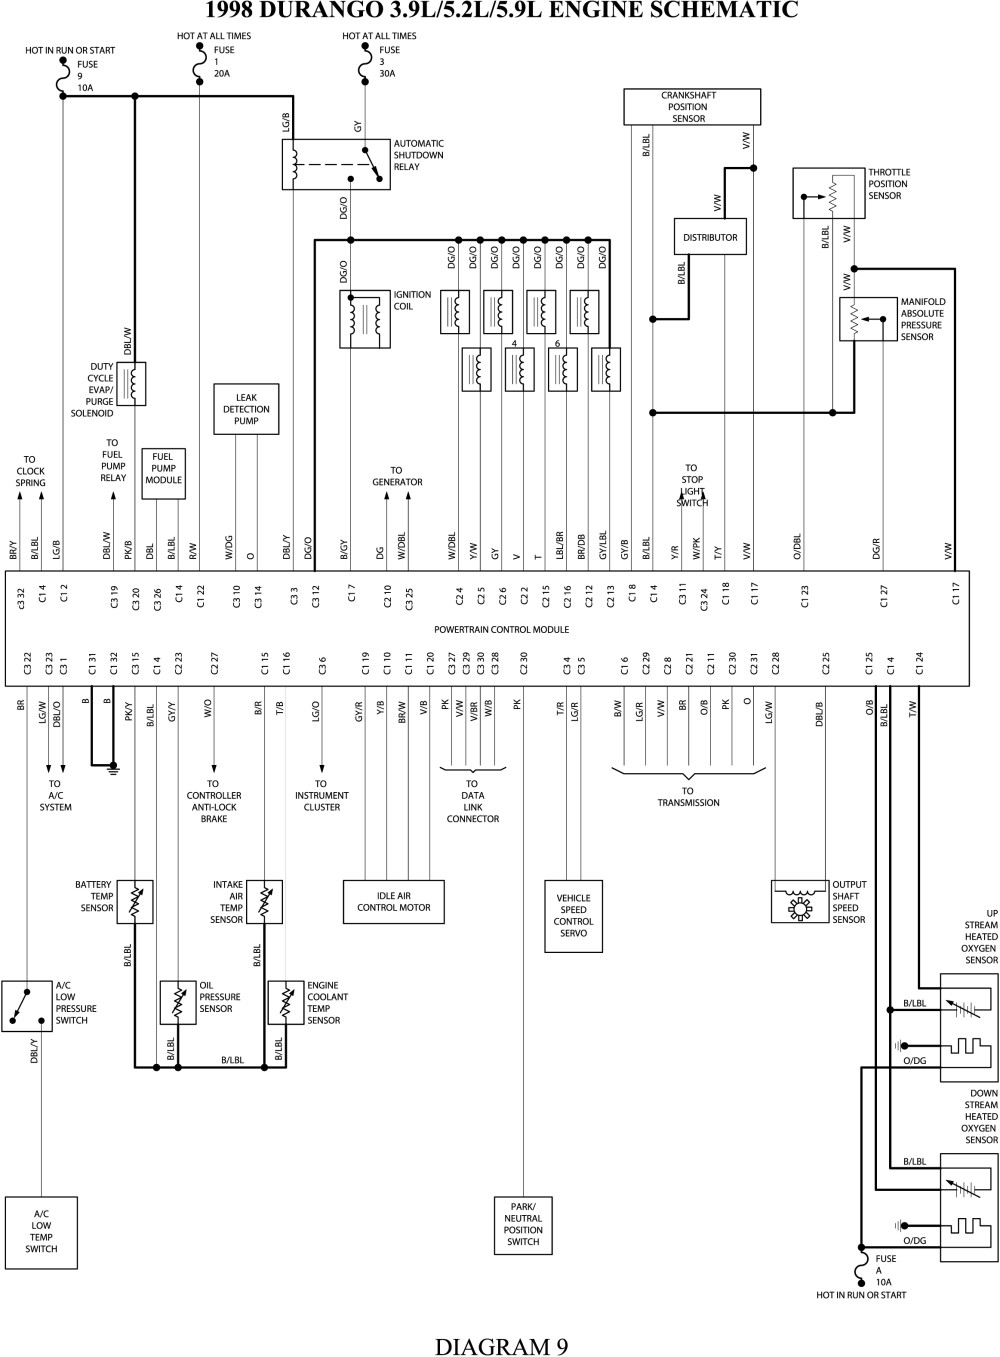 2004 durango wiring diagram durango ignition wiring diagram | wiring diagram